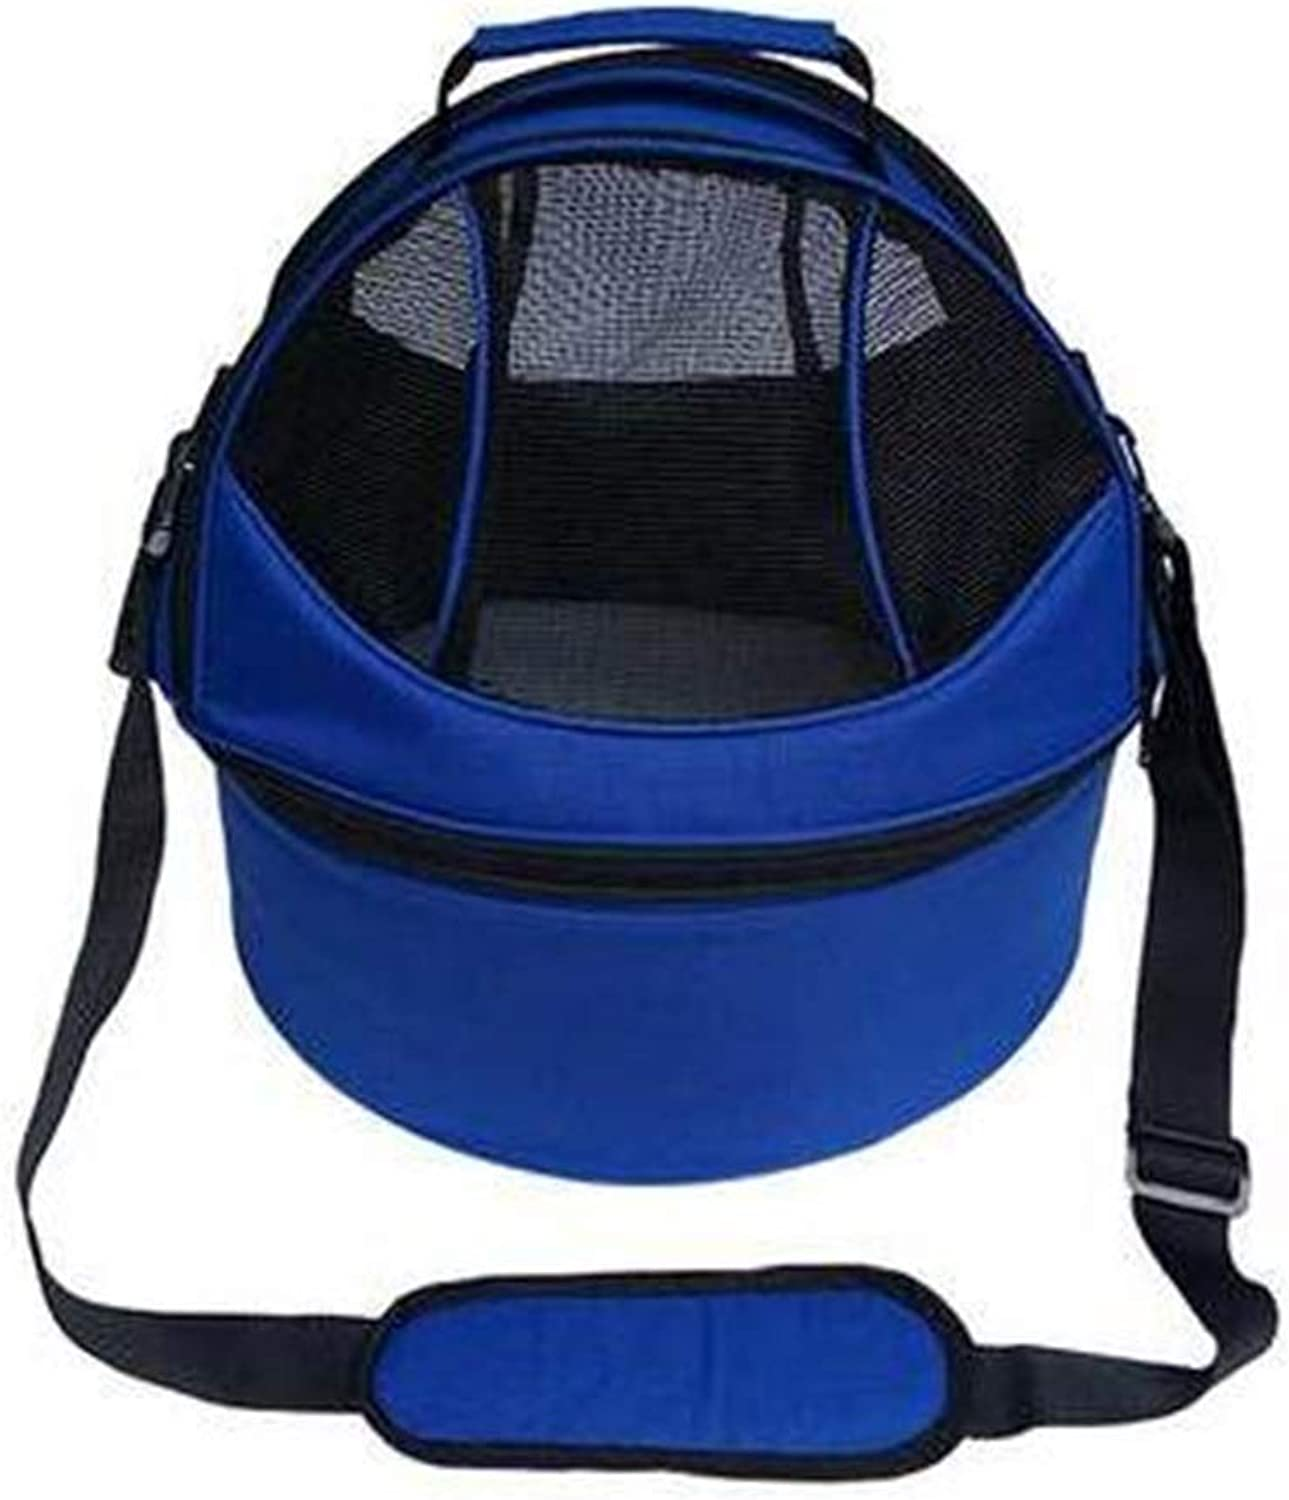 Pet Bag MultiFunction Portable MediumSized For HandHeld OneShoulder Vehicle ThreeInOne Outgoing Cat Backpack Pet Supplies